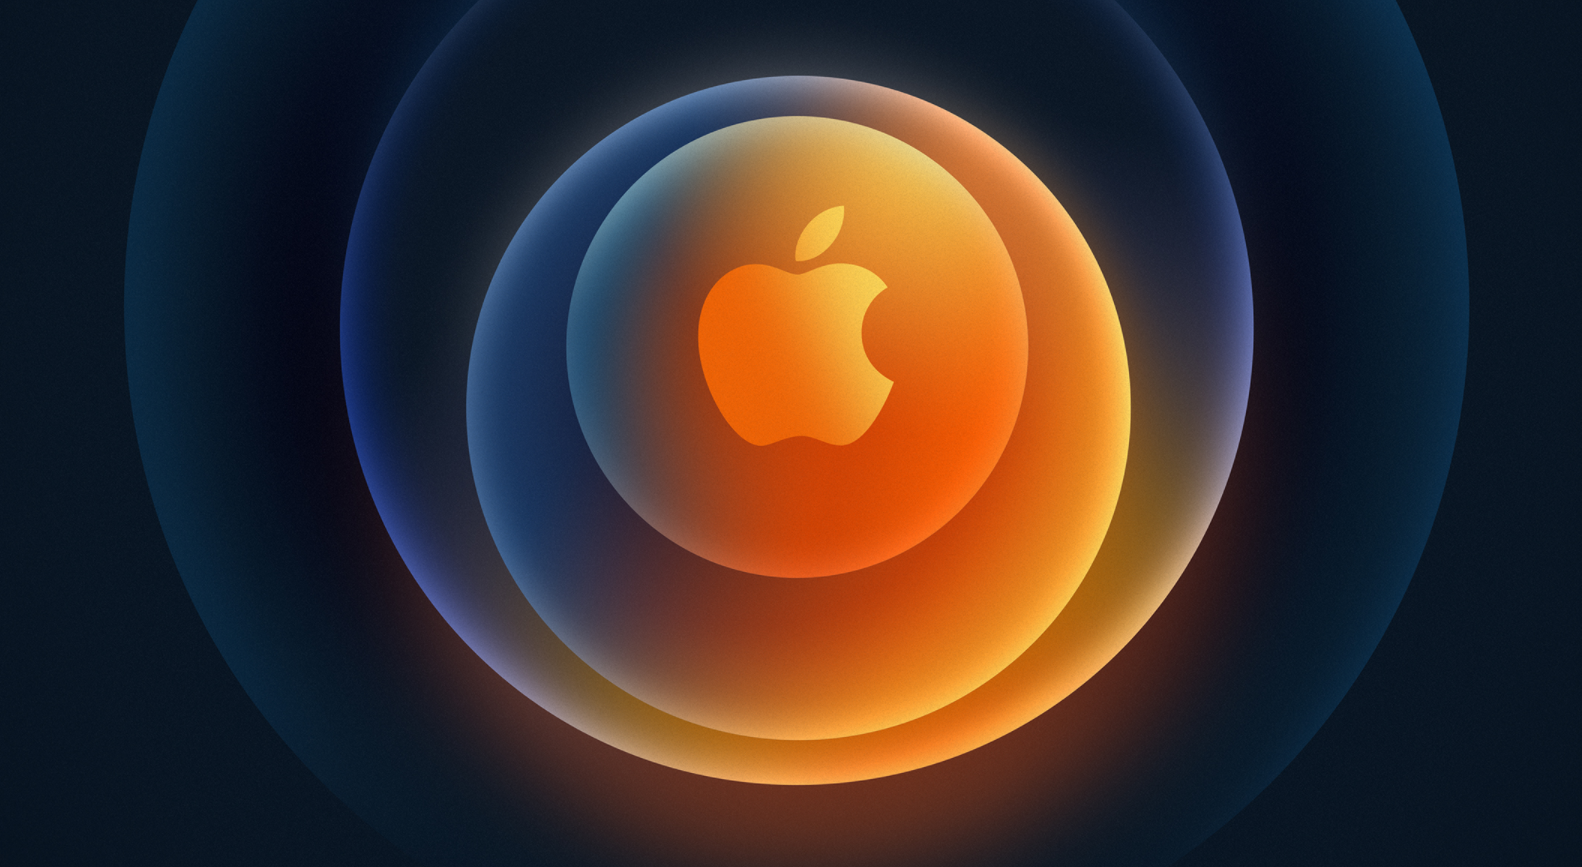 iphone-apple-event-october.png